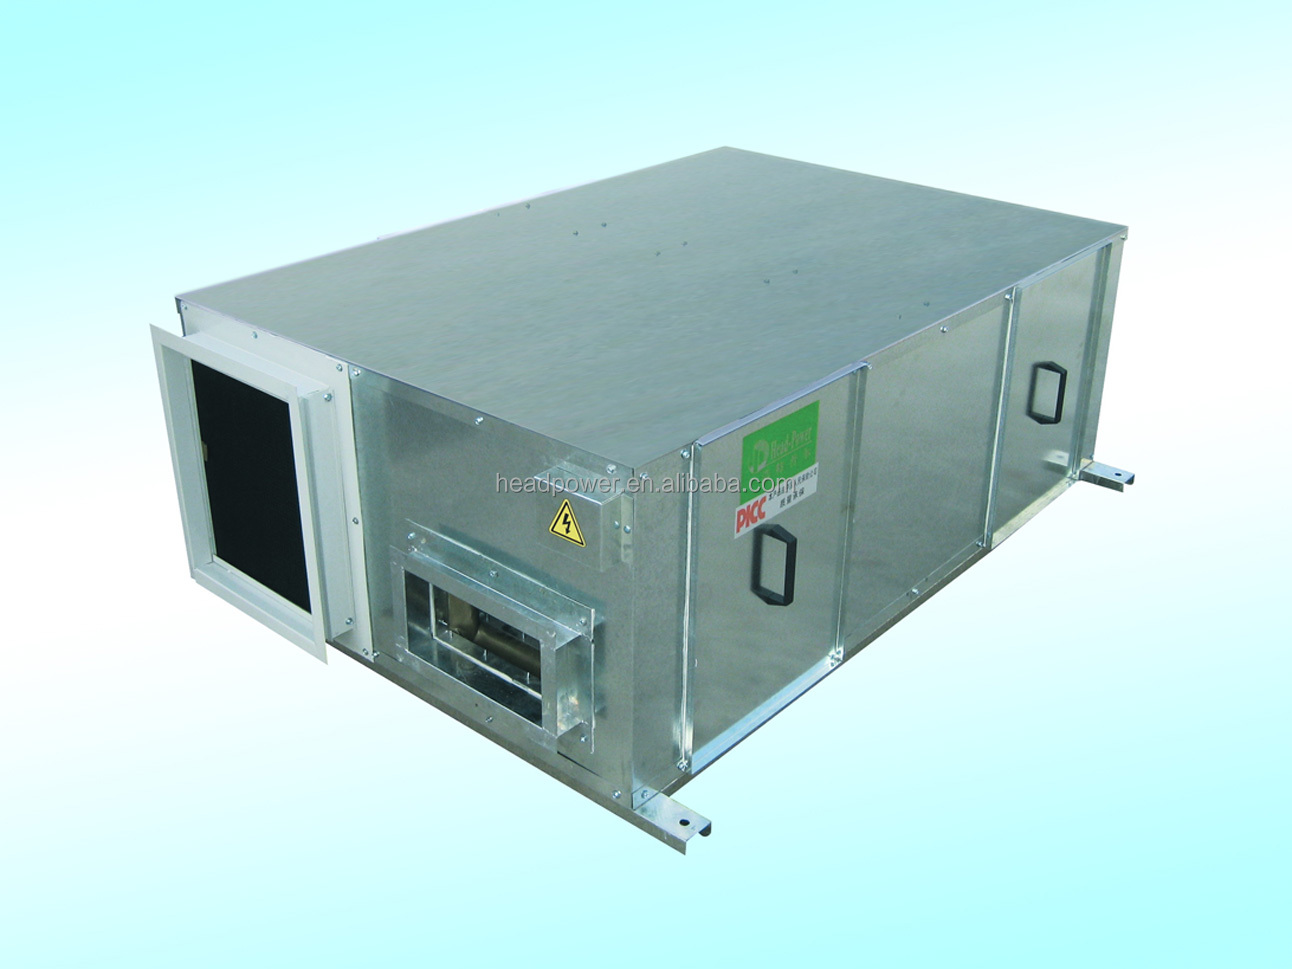 Ceiling Heat Exchanger : Ceiling mounted residential heat exchanger recovery